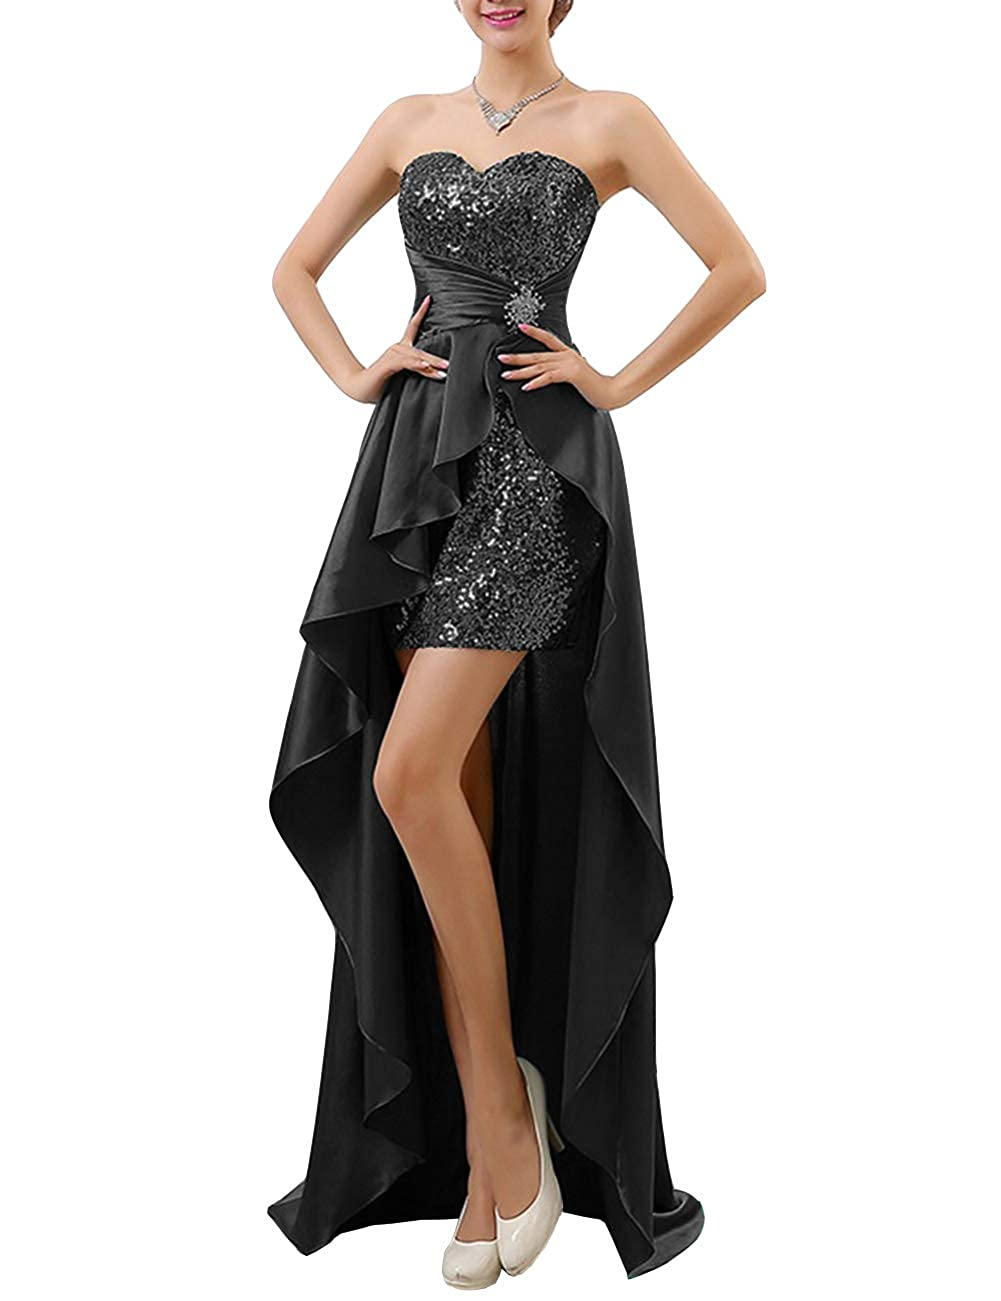 28a69f771b5c Uther Strapless Sequin High Low Evening Party Prom Gown Bridesmaid Dresses  at Amazon Women's Clothing store: